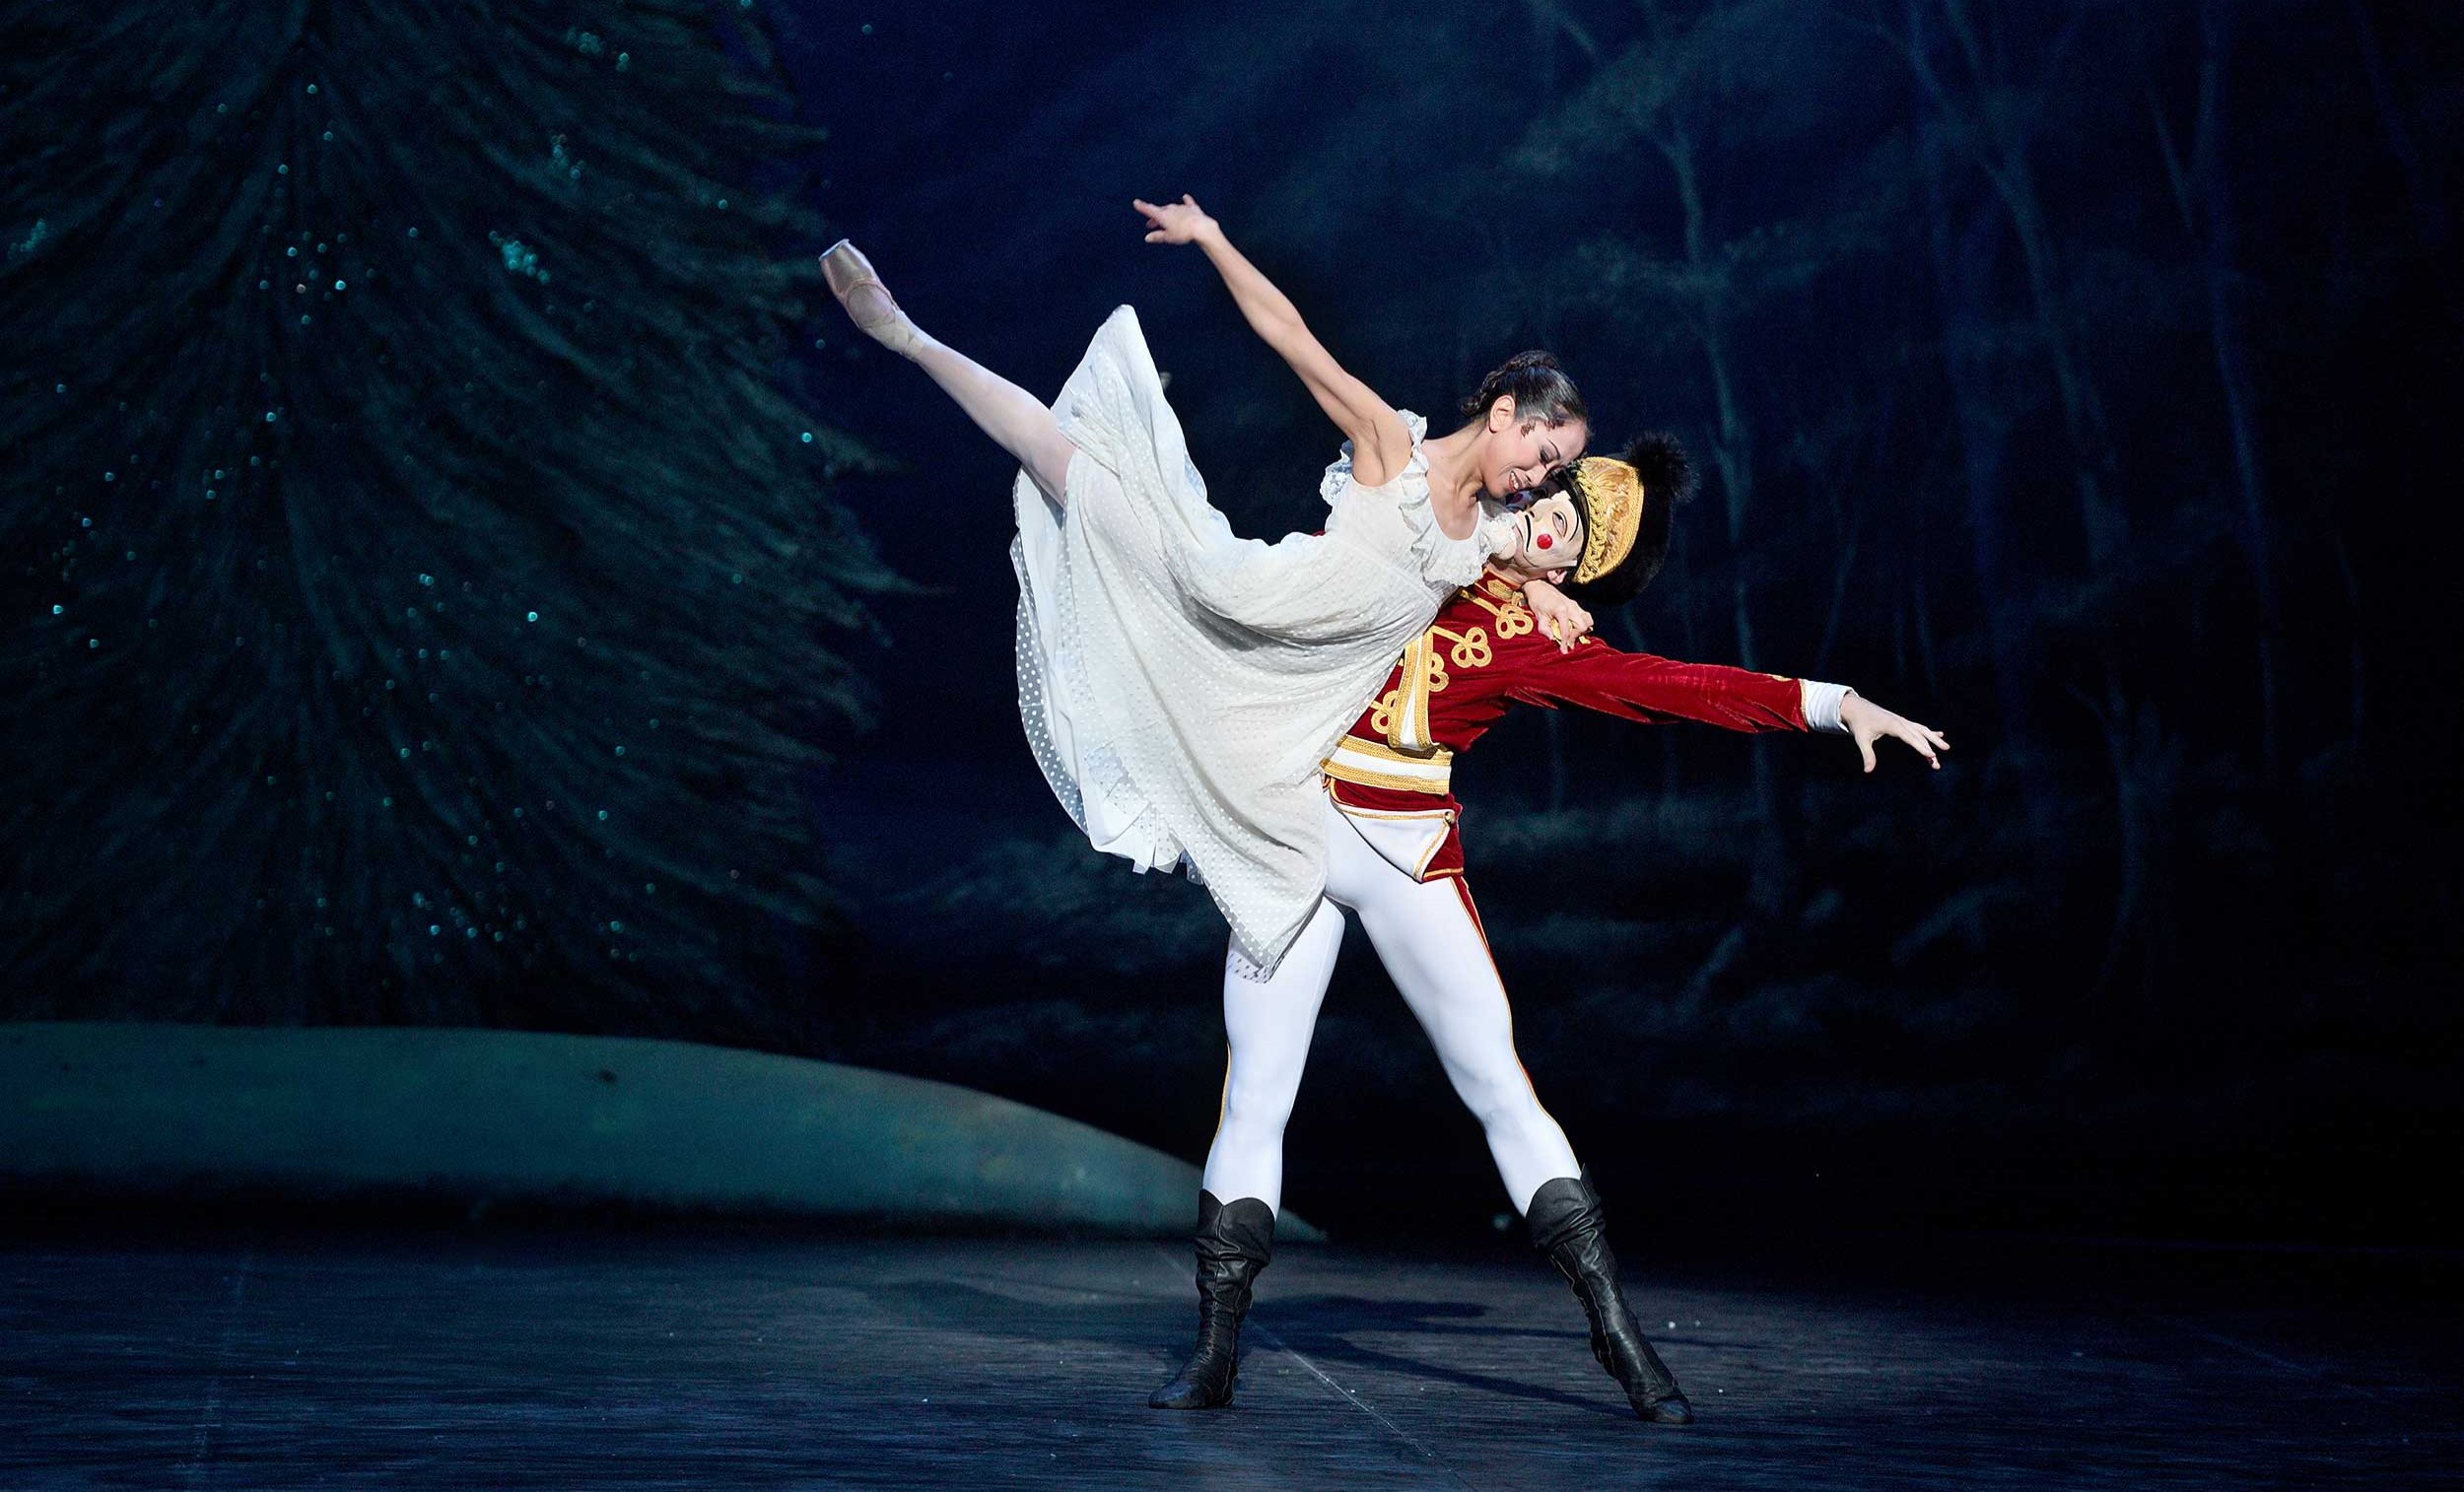 Erina Takahashi and Skyler Martin in English National Ballet's Nutcracker © Laurent Liotardo